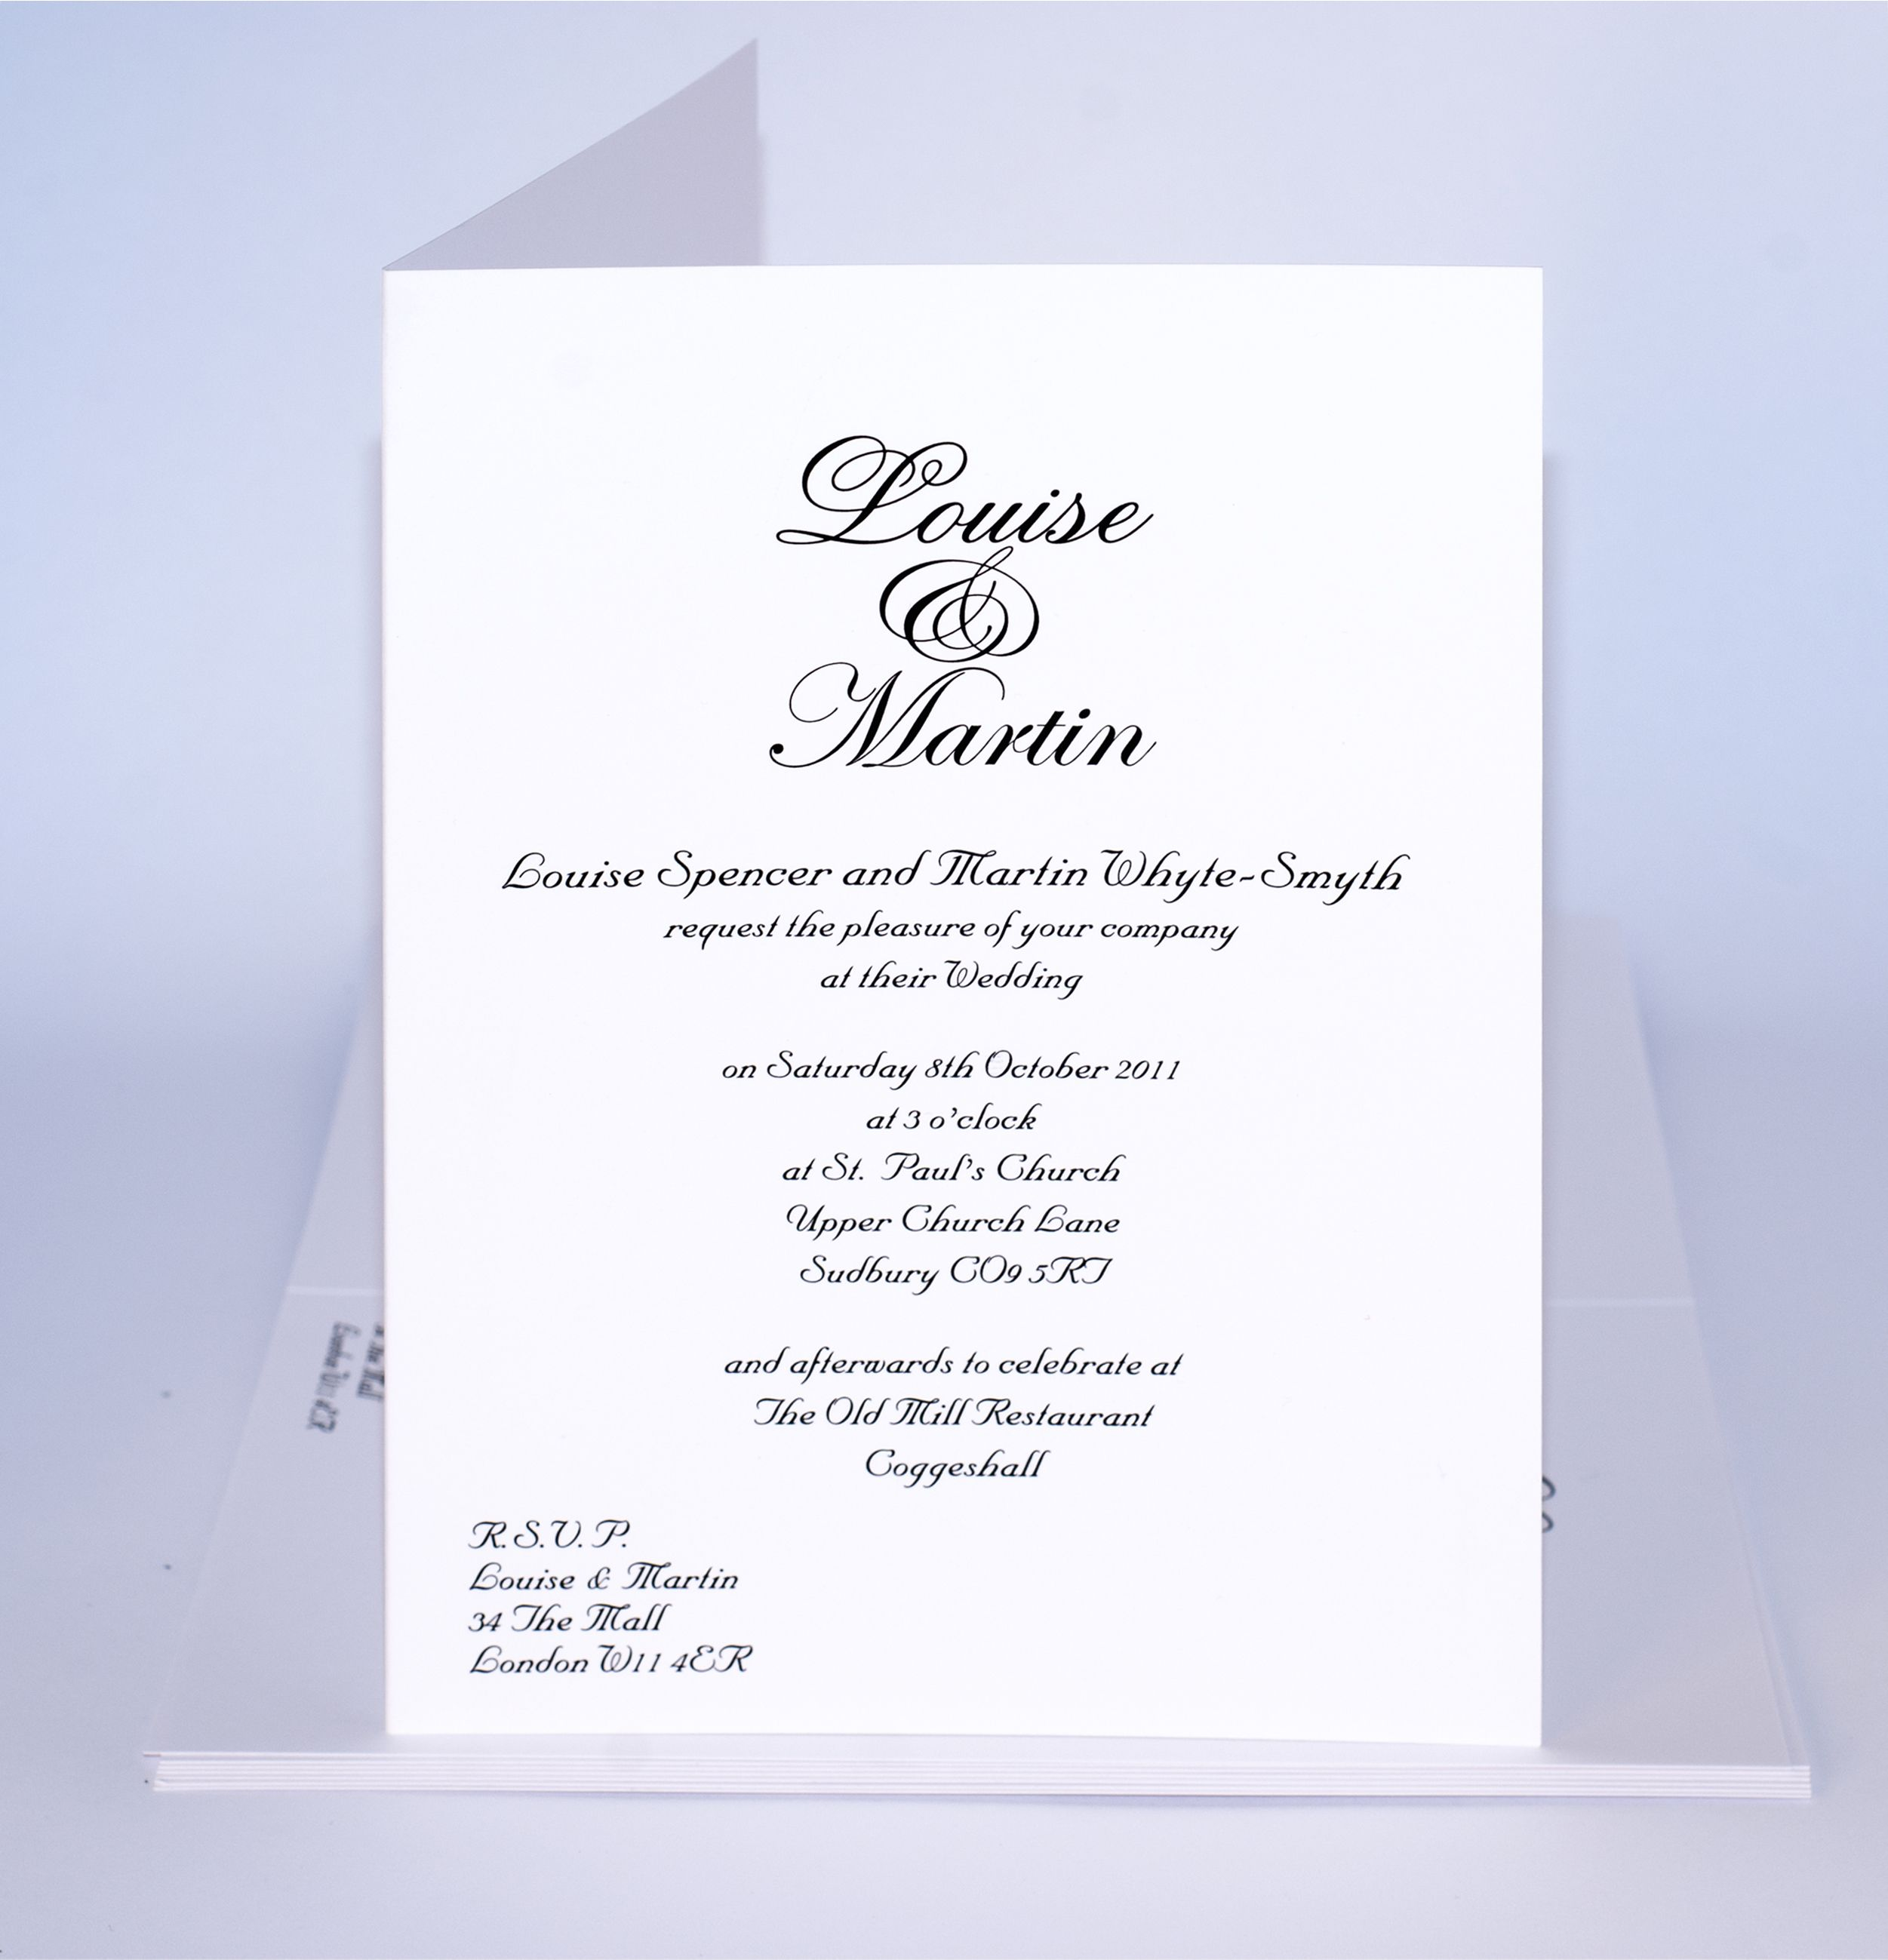 wedding invitation templates | invitation templates butterfly ...